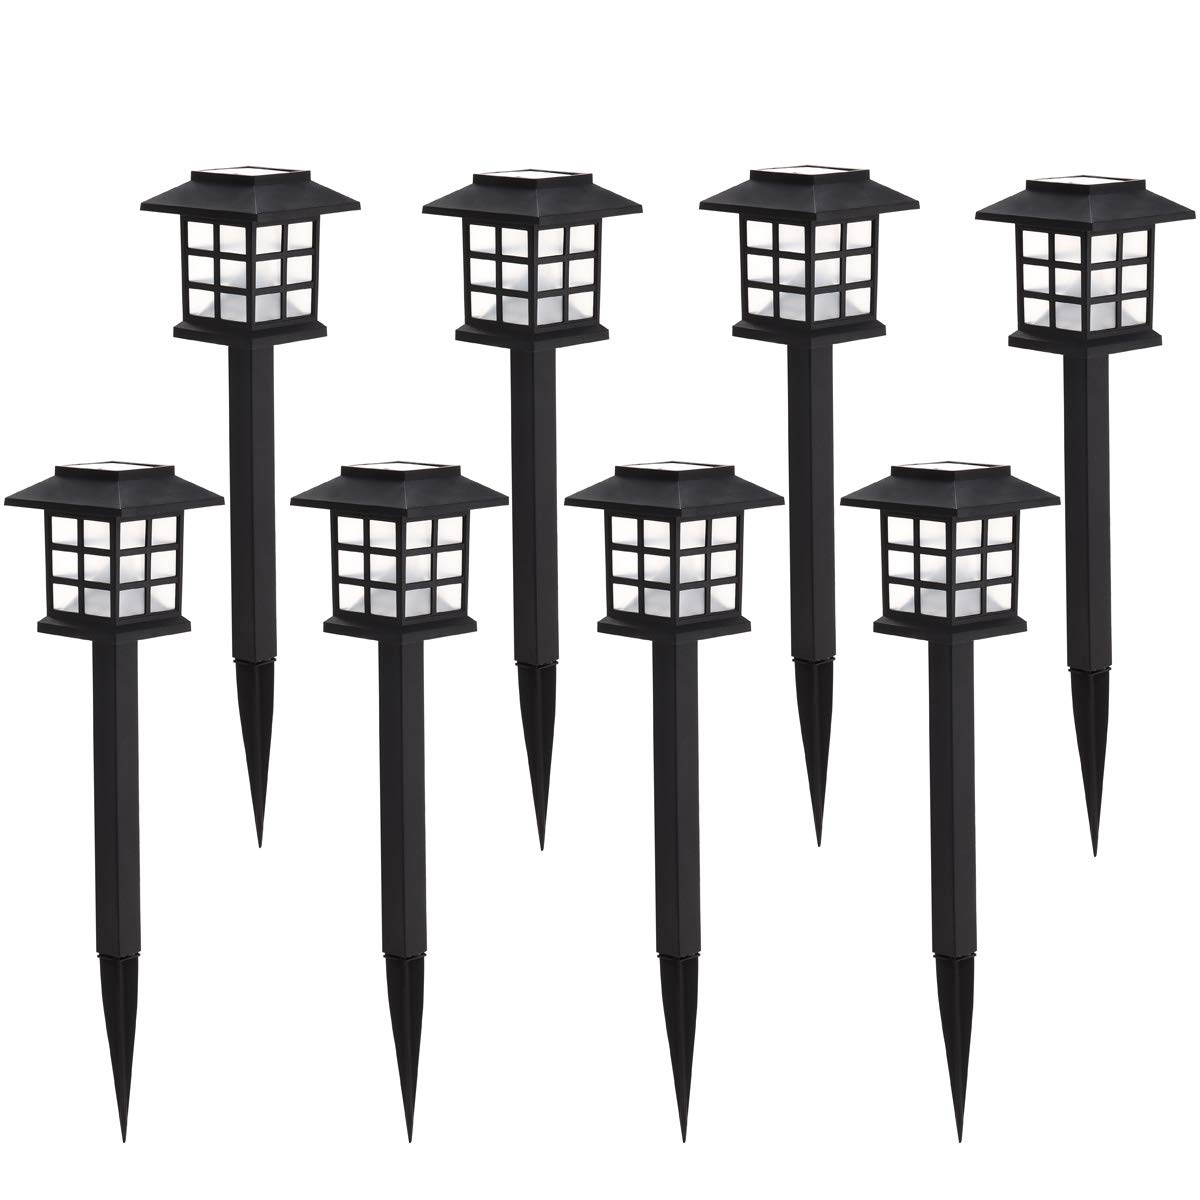 AILATAN 8 Pack Solar Pathway Lights Outdoor,Waterproof Outdoor Garden Lights,Outdoor Landscape Lighting for Garden, Landscape, Path, Yard, Patio, Driveway, Walkway-(Warm White) by AILATAN